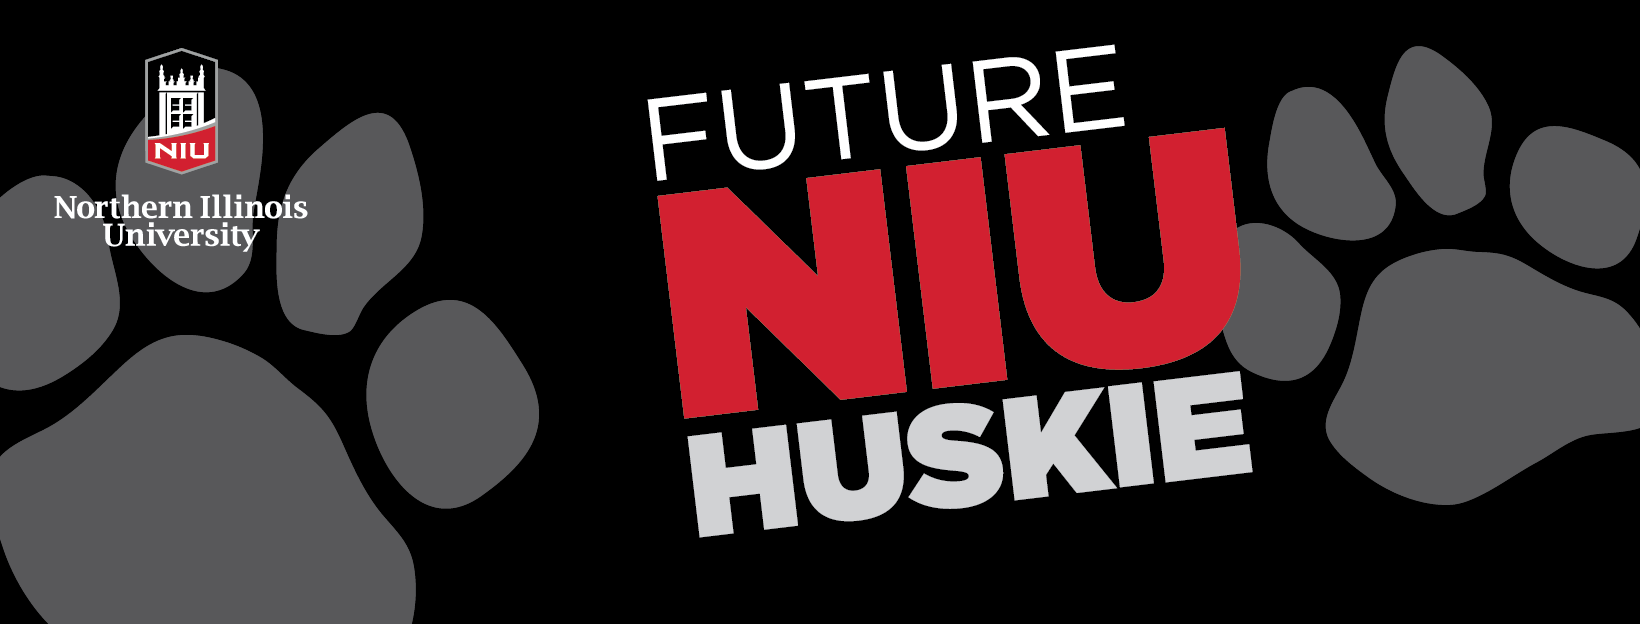 Future Huskie - Black for Profile